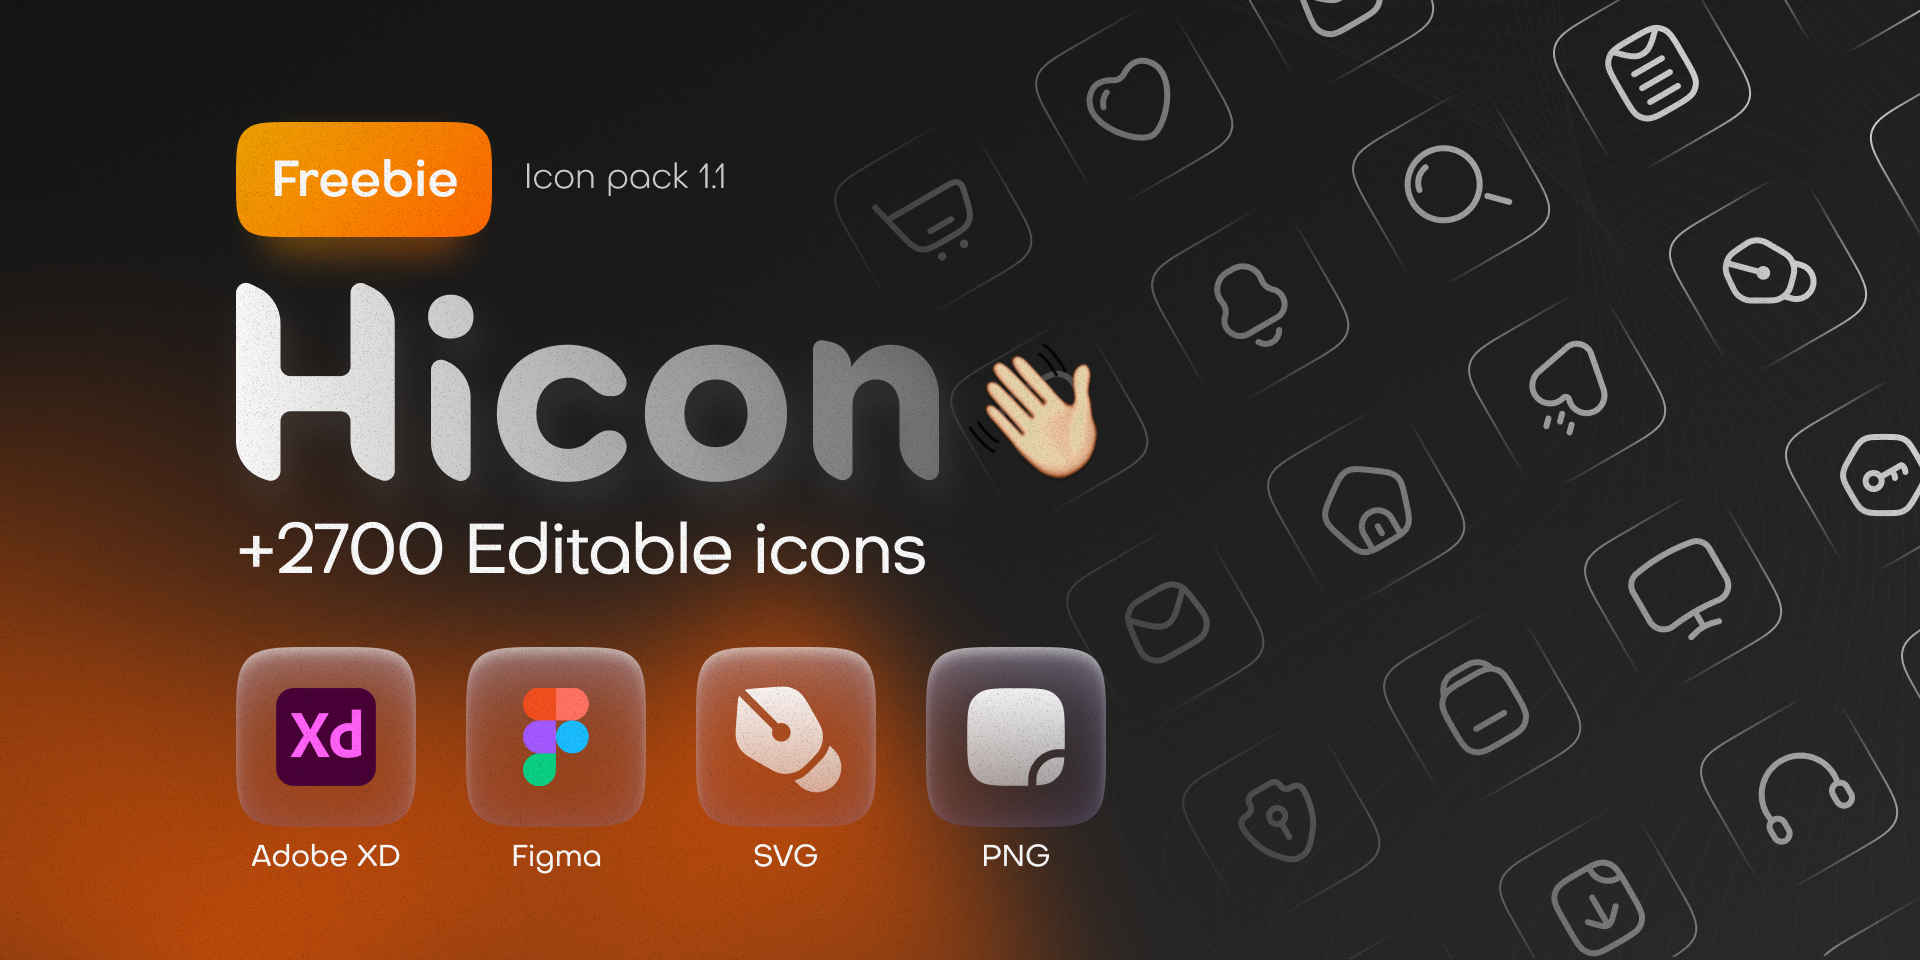 Hicon (Free icon pack) - +2700 Editable icons from UIGarage